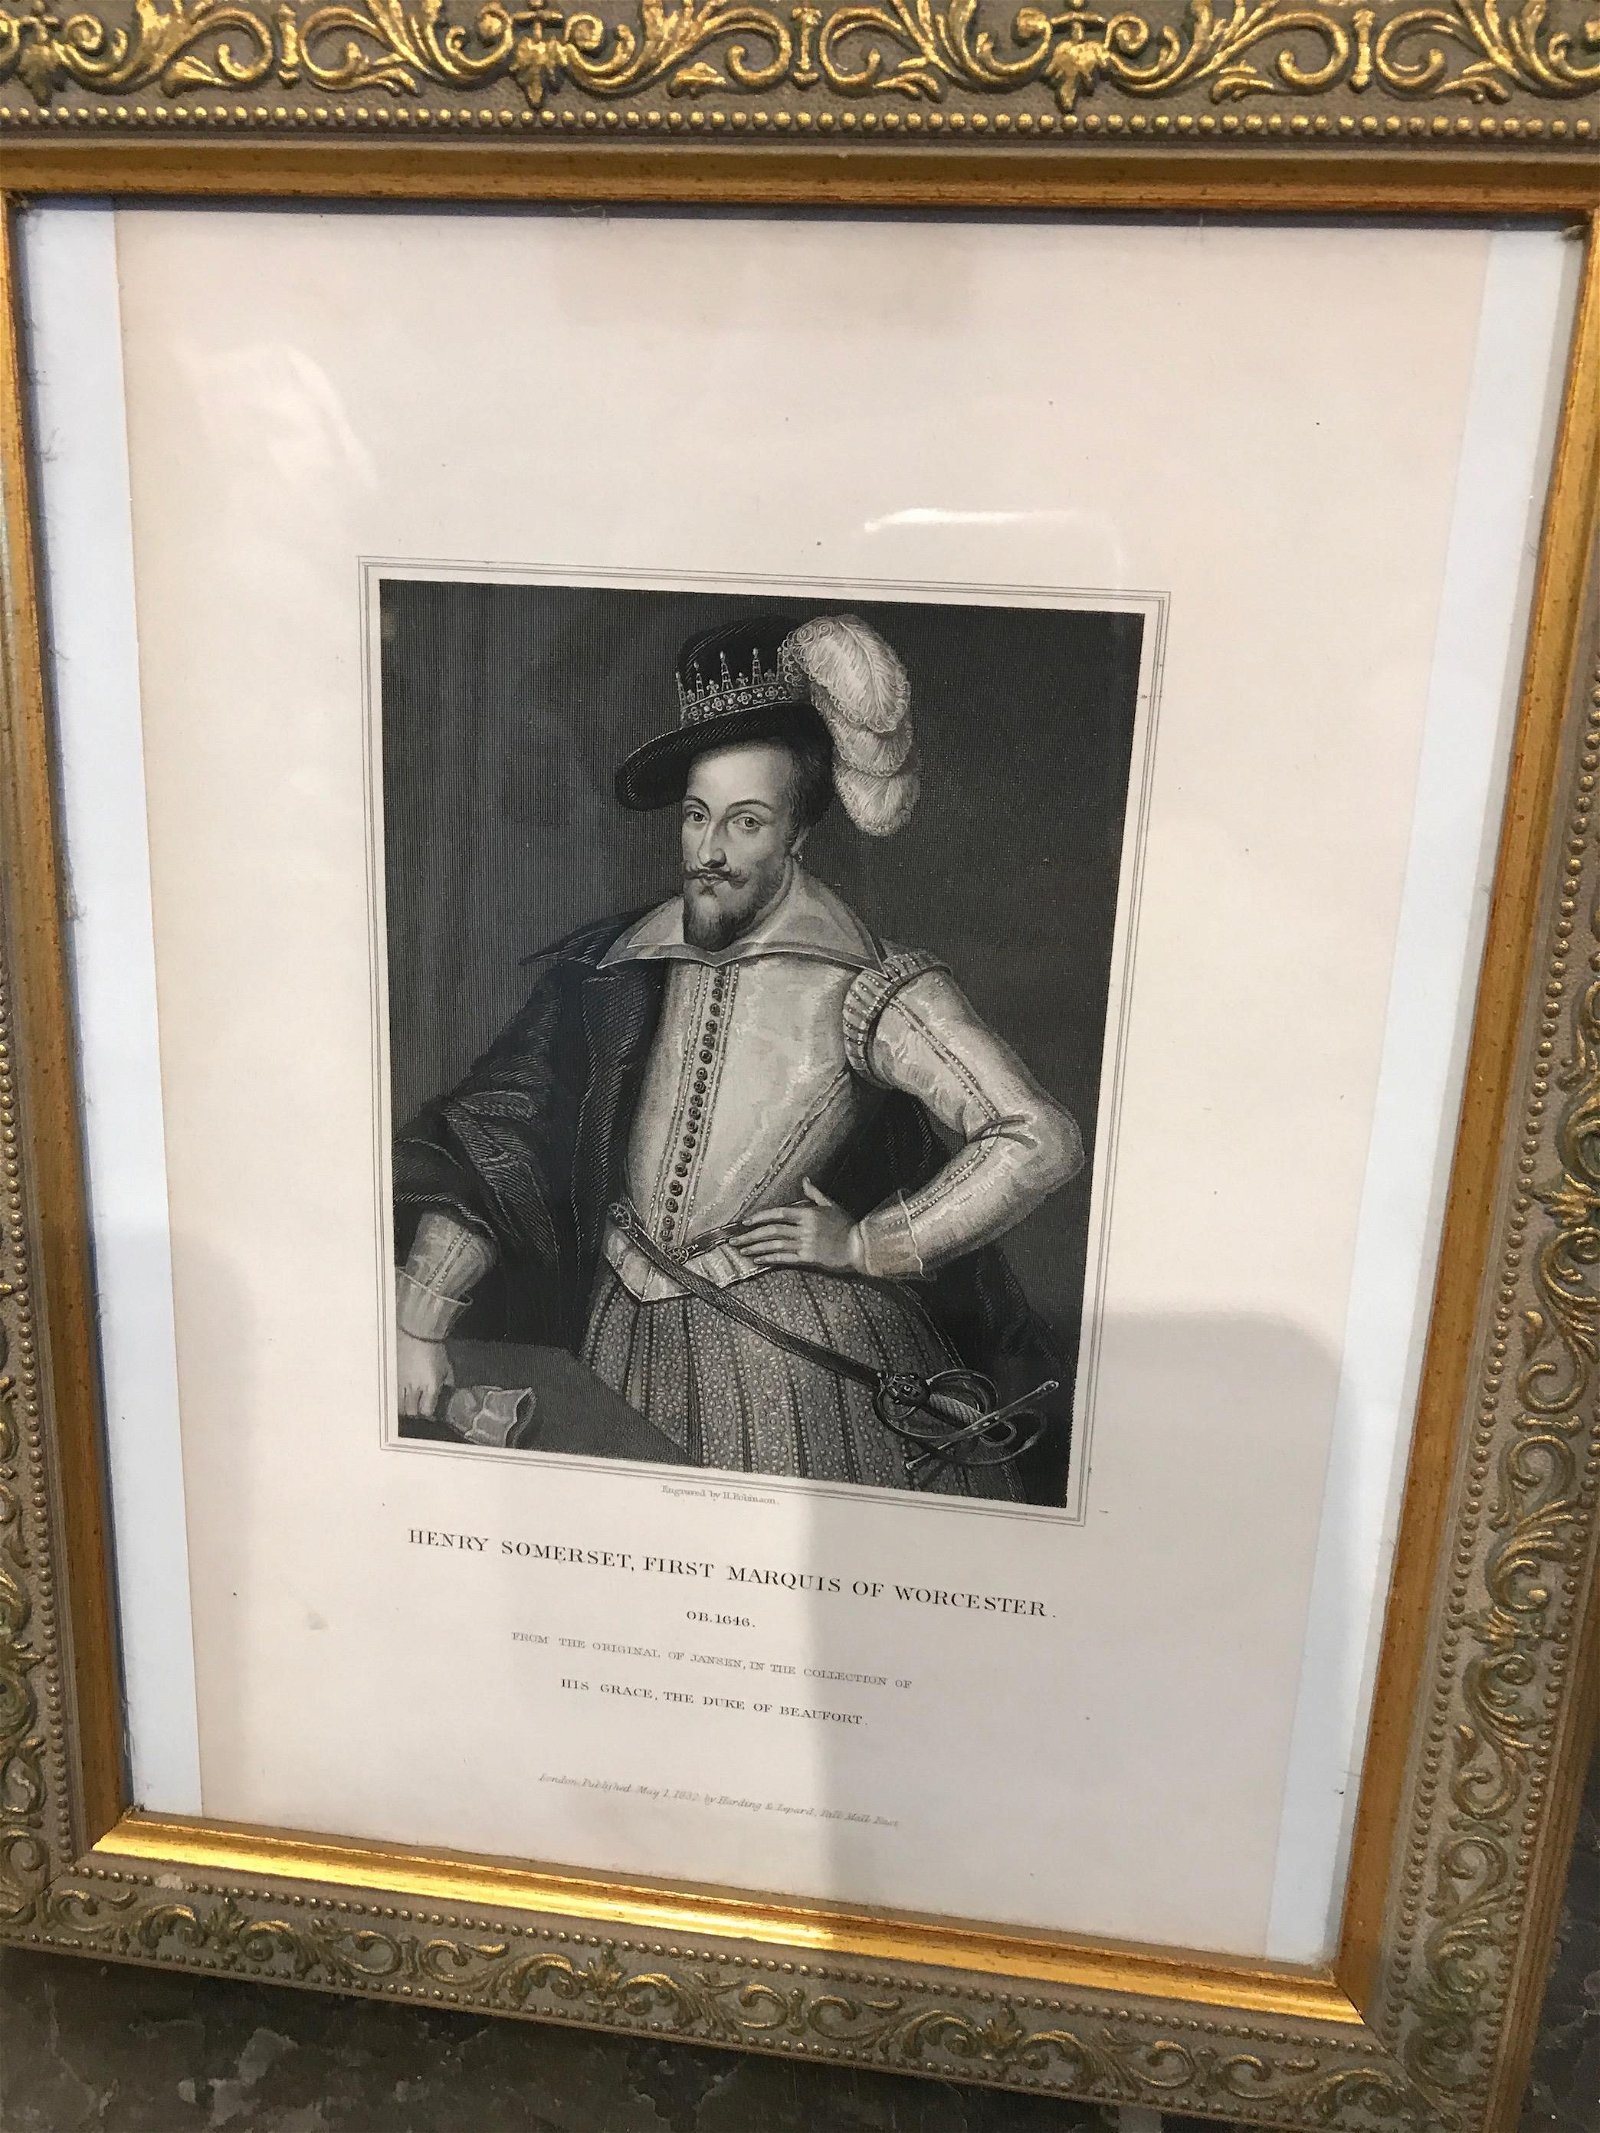 Vintage Print on Paper - Henry Somerset, First Marquis